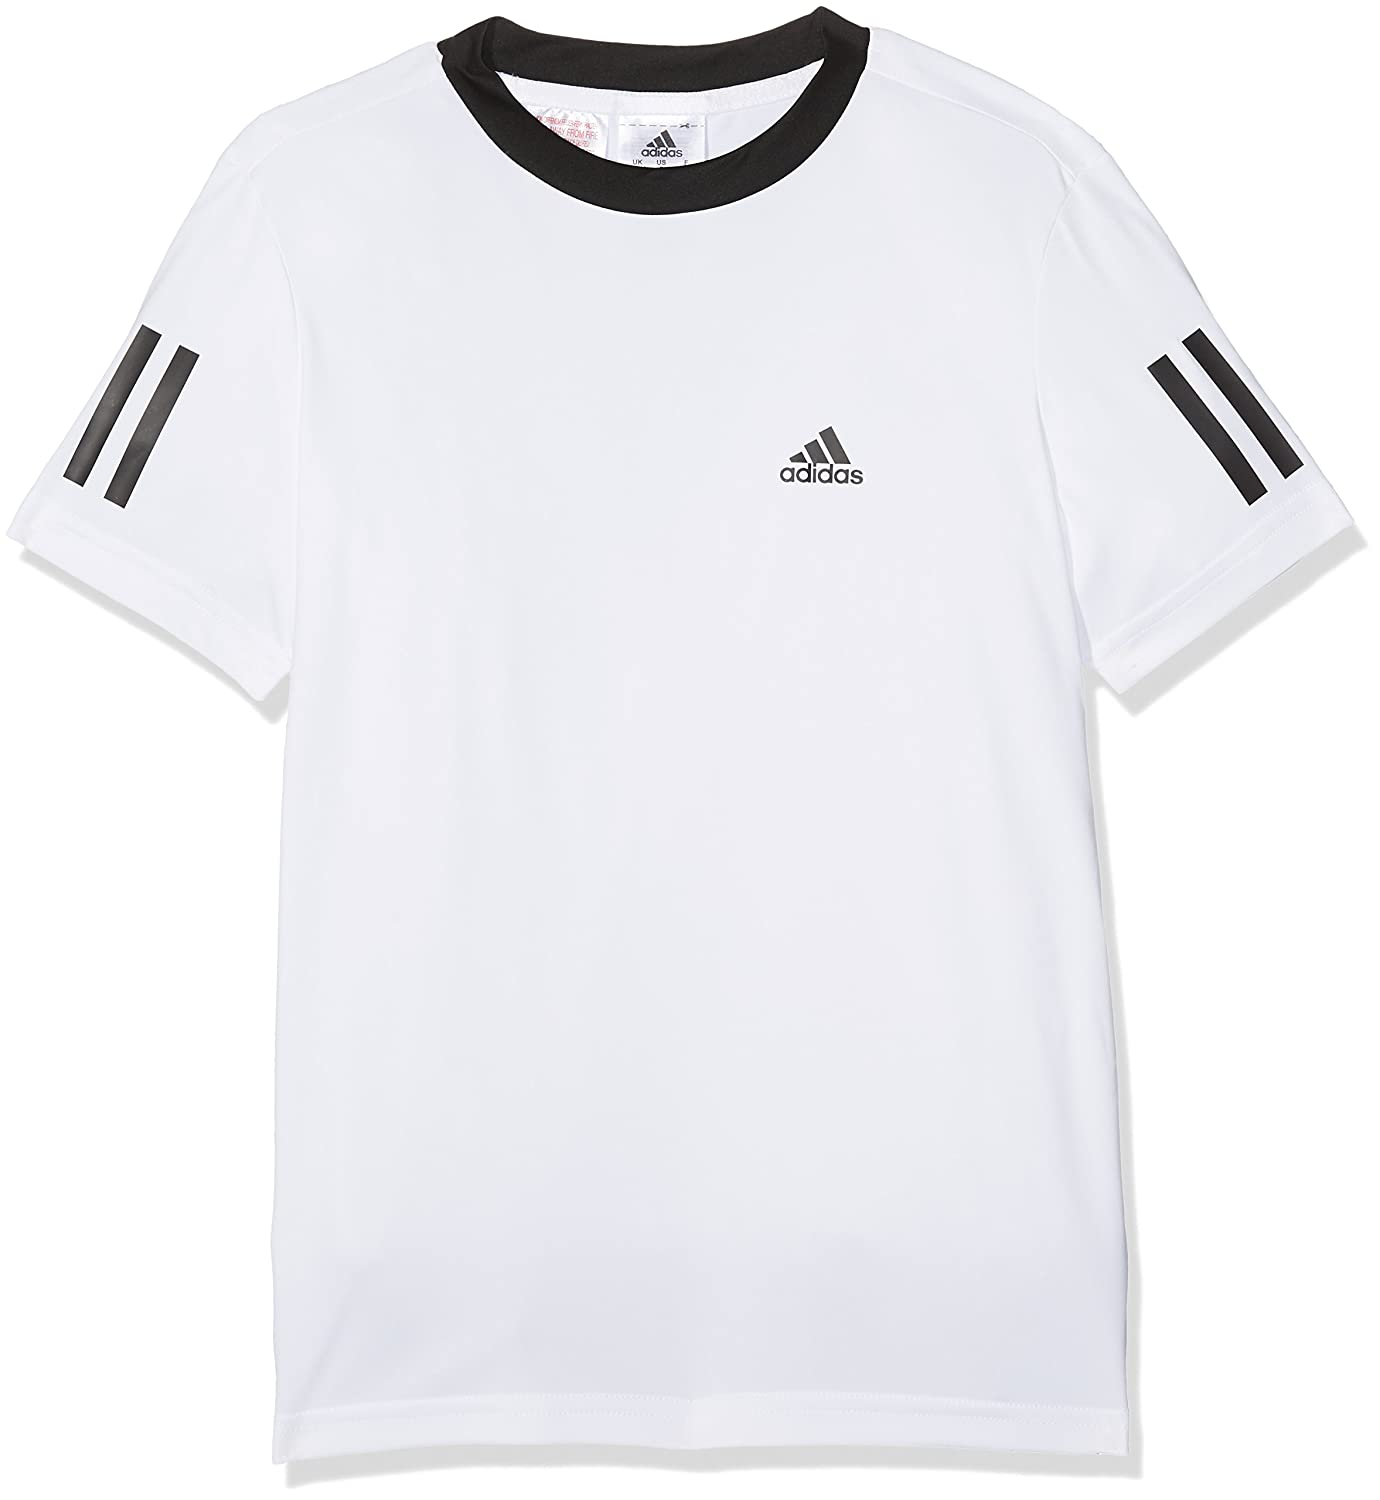 adidas Boys' Club T-Shirt adidas Boys' Club T-Shirt ADIFO|#adidas BJ8236